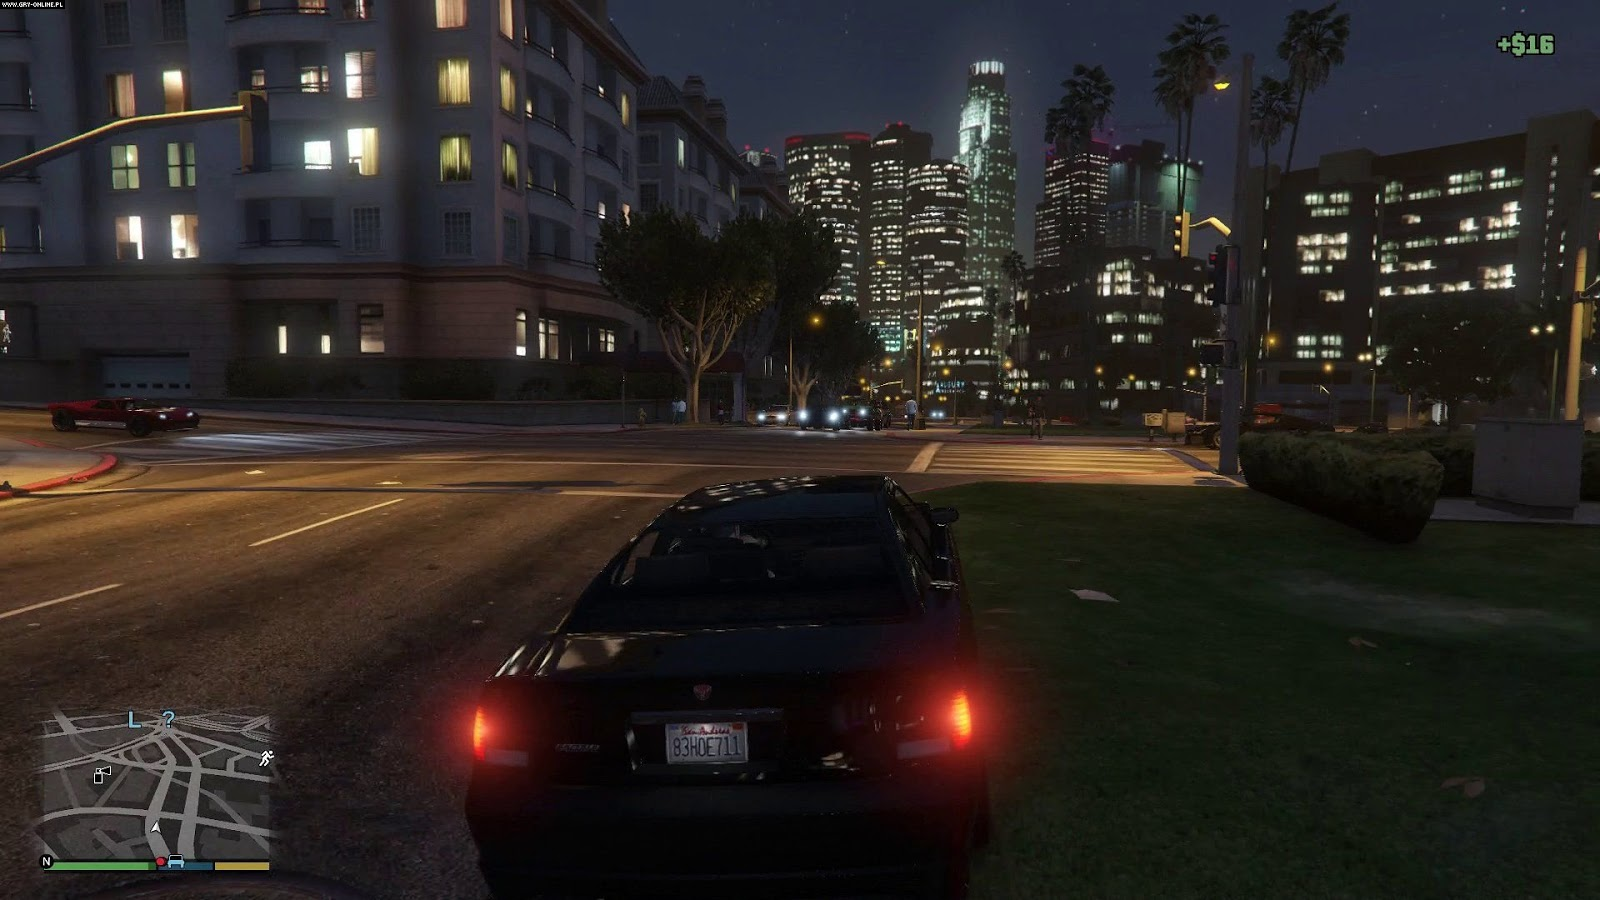 Image Result For Gta V K Free To Use Gameplay Grand Theft Auto V